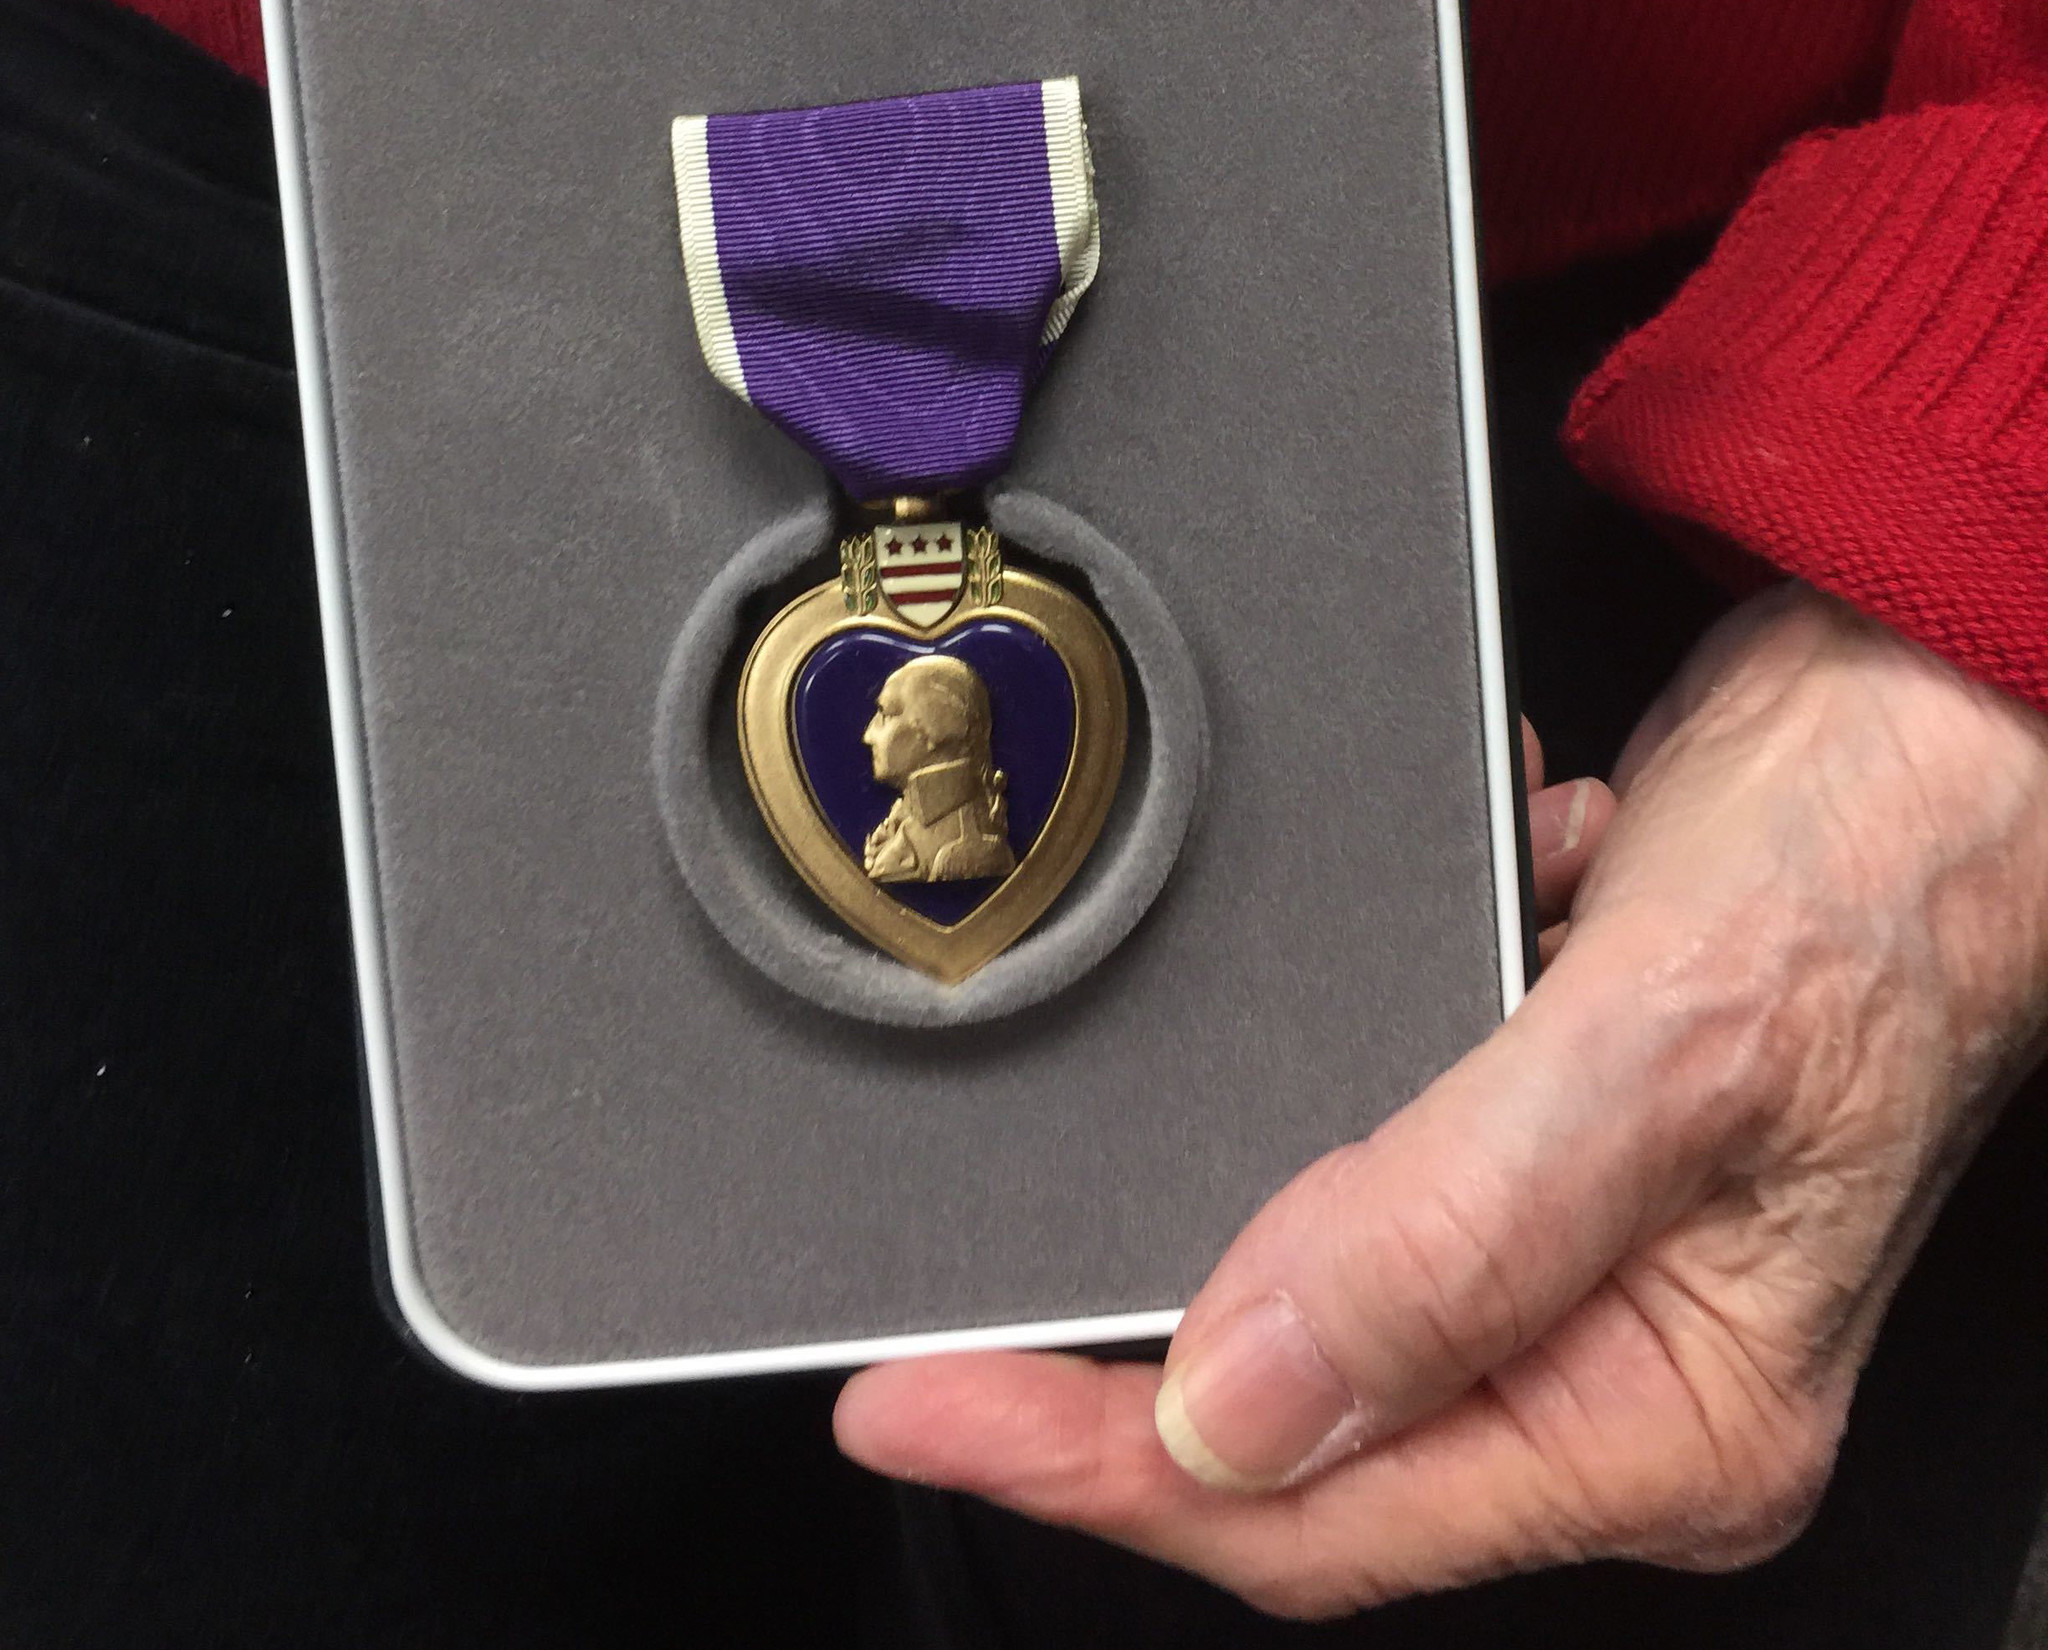 Coast Guard member killed in WWI given Purple Heart in Staten Island — 100 years after death